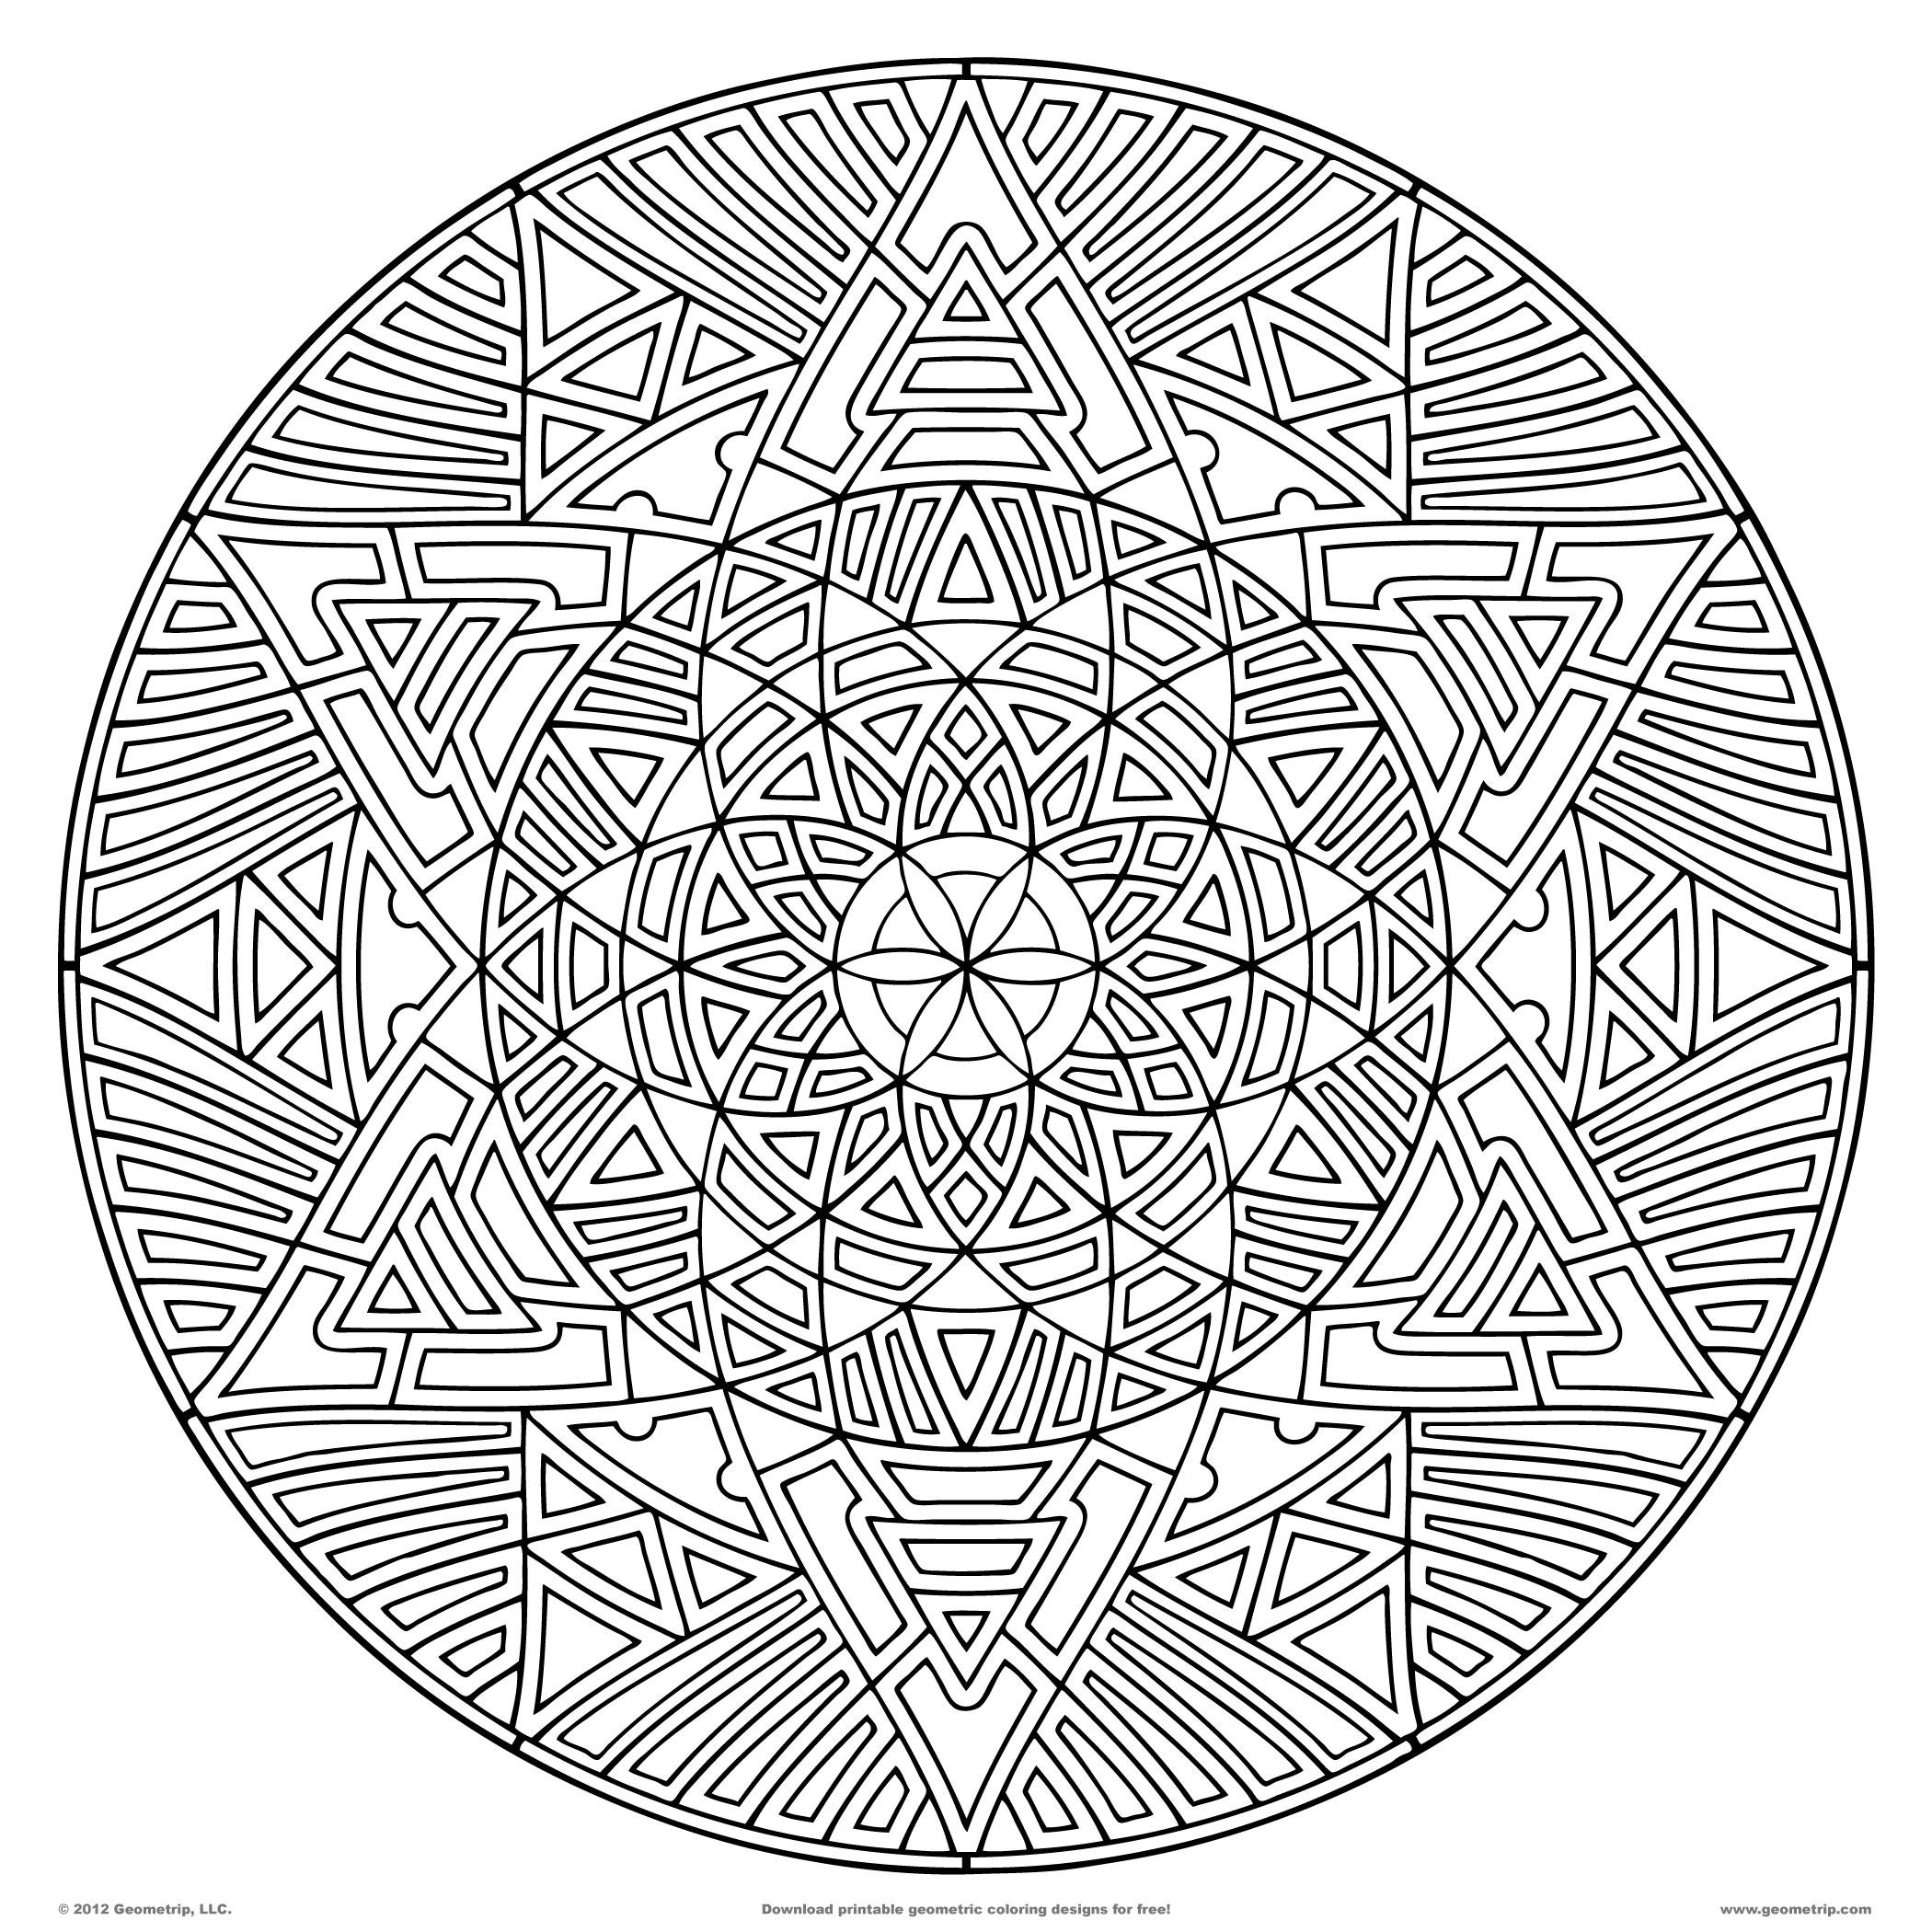 2100x2100 Best Of Mandala Coloring Pages Expert Level Free Coloring Pages